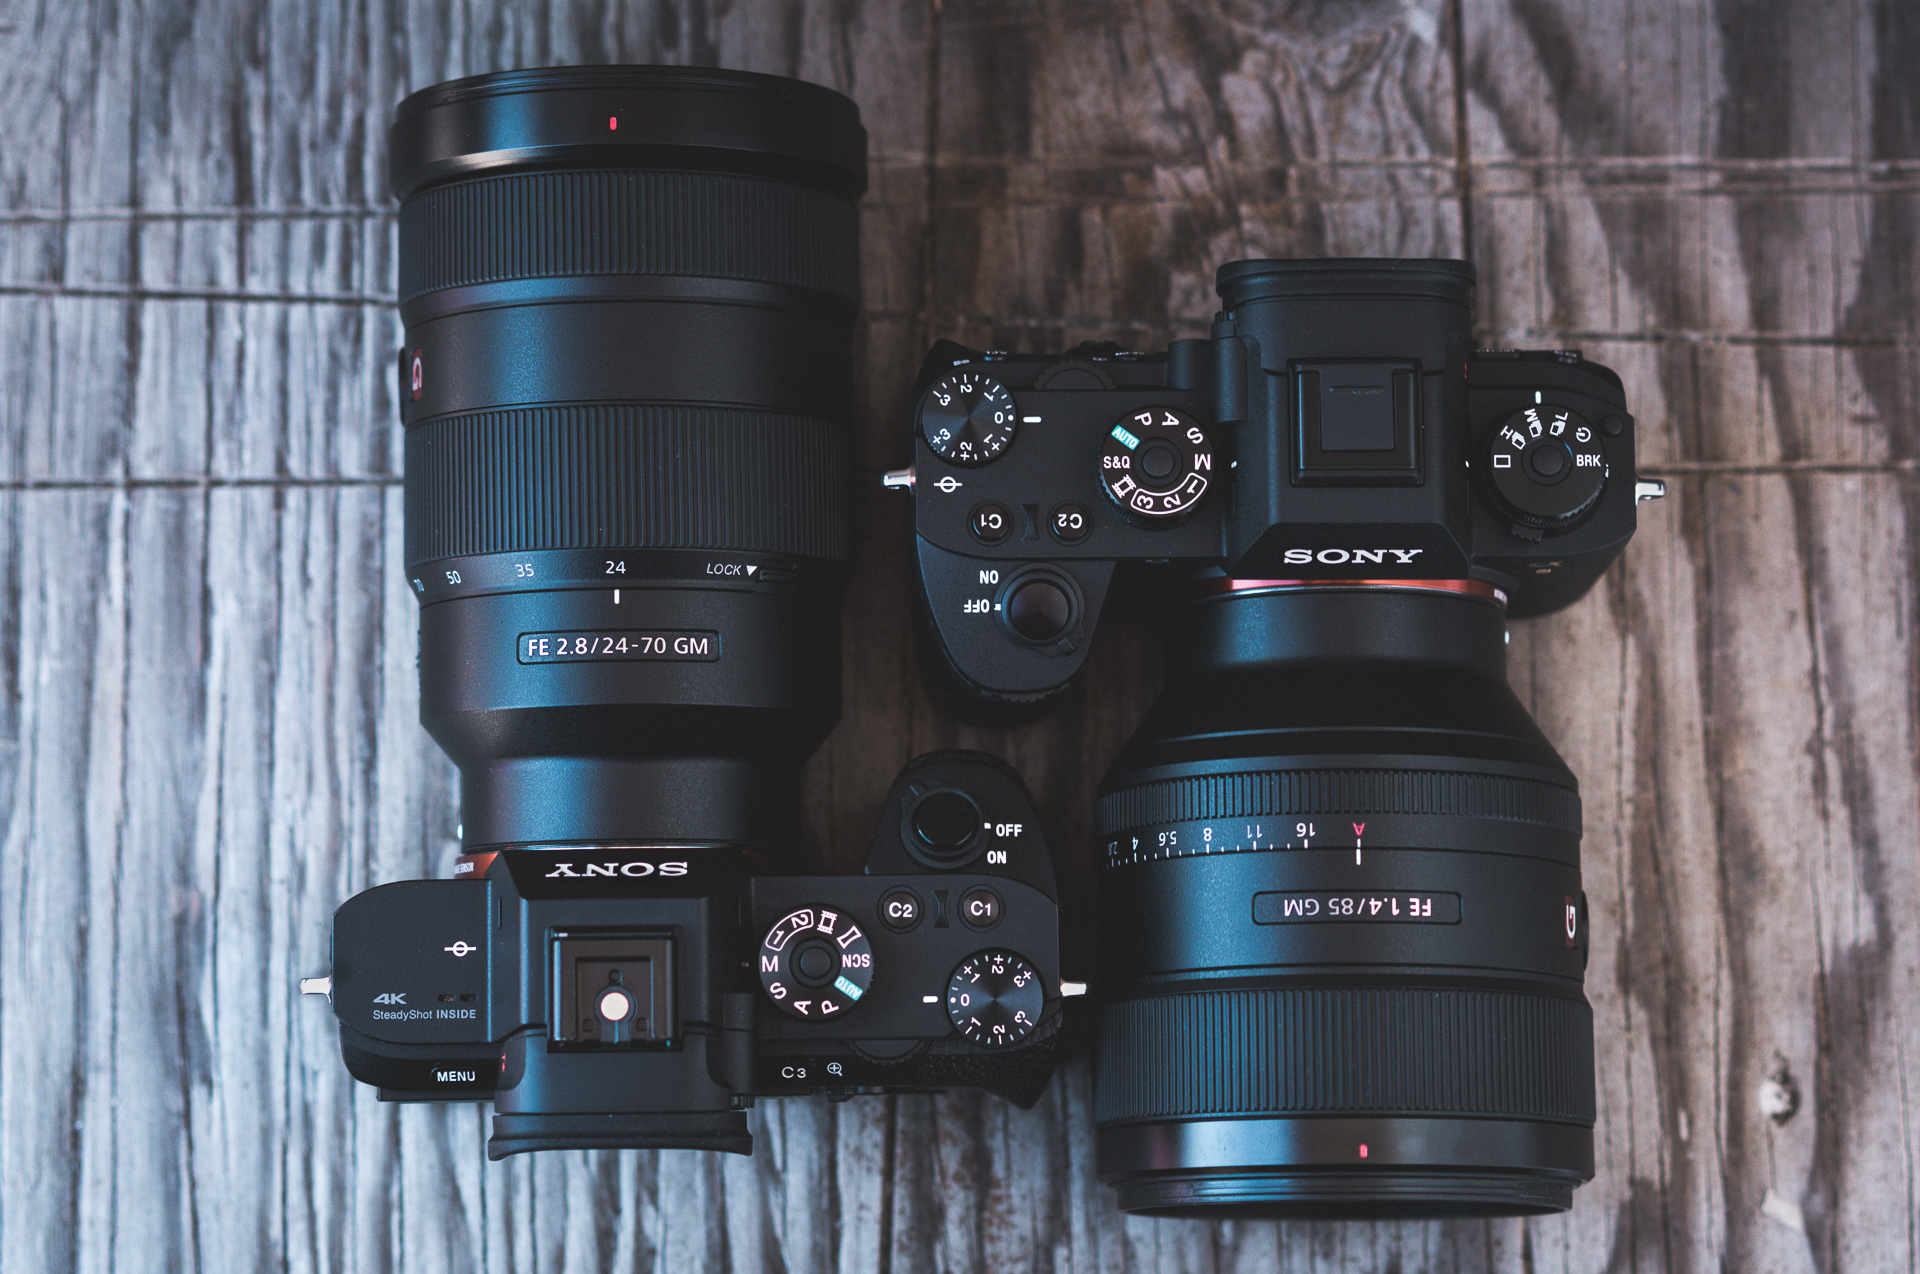 Sony a9 Camera + Sony FE 85mm f/1.4 GM Lens & Sony a7rII + Sony FE 24-70mm f/2.8 Lens